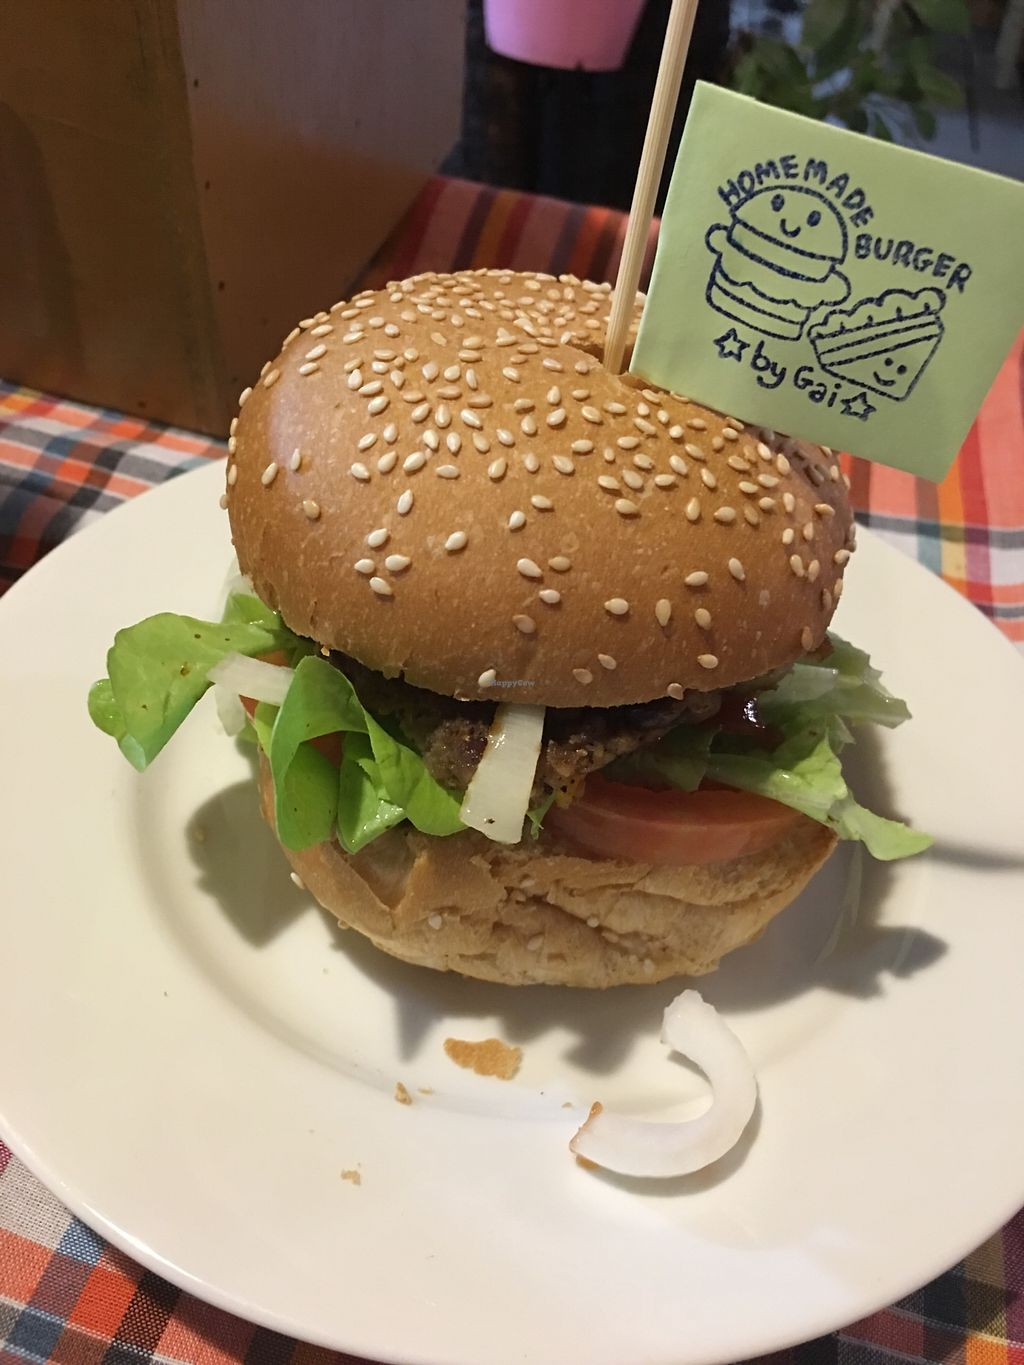 "Photo of Homemade Burgers and Sandwiches  by <a href=""/members/profile/Siiinimini_"">Siiinimini_</a> <br/>Vegan burger  <br/> January 21, 2018  - <a href='/contact/abuse/image/109558/349409'>Report</a>"